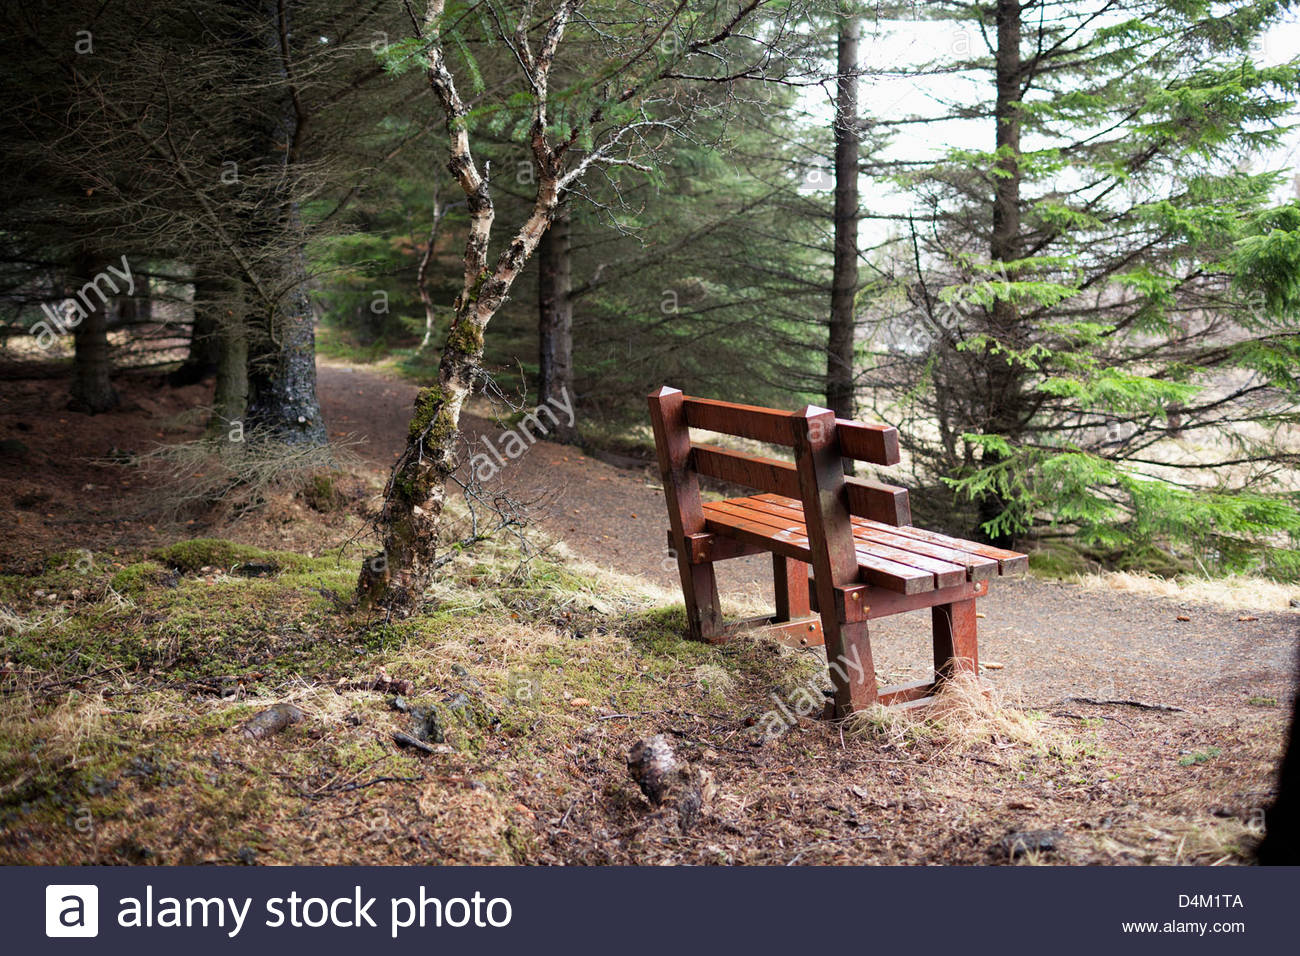 Bench on dirt road in forest - Stock Image